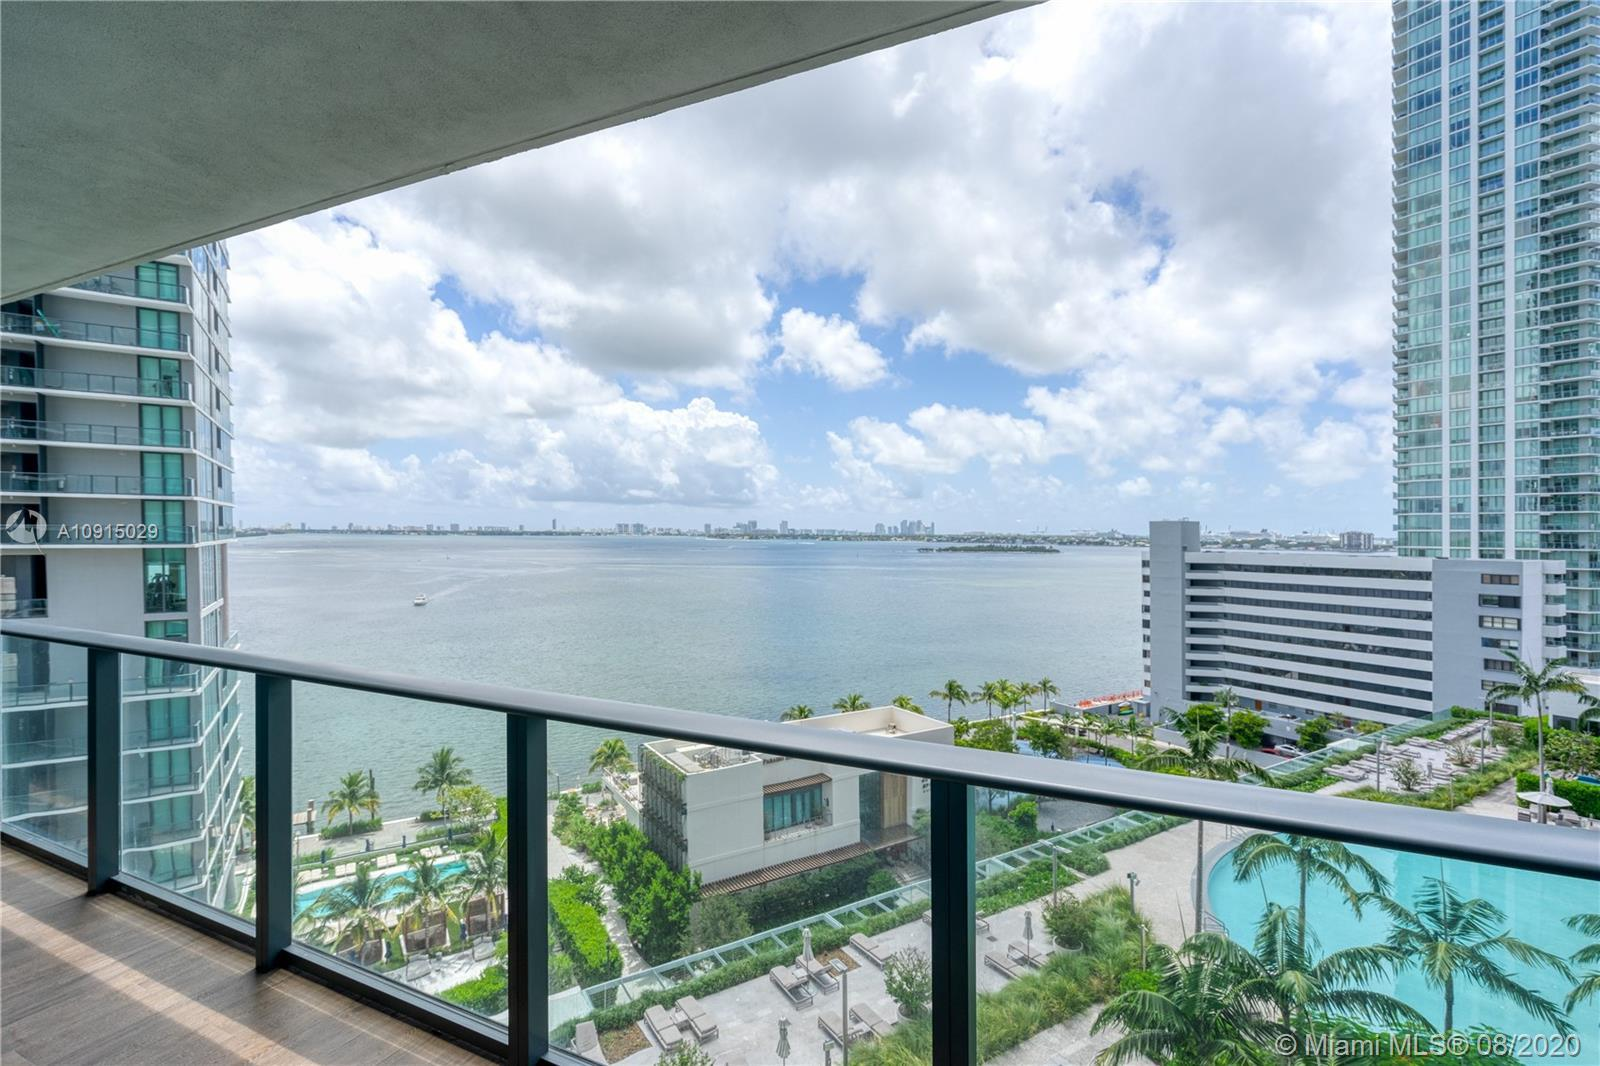 Amazing Turn Key Flow-Through Unit at desirable Building Paraiso Bay at Edgewater. Open Floor Plan w